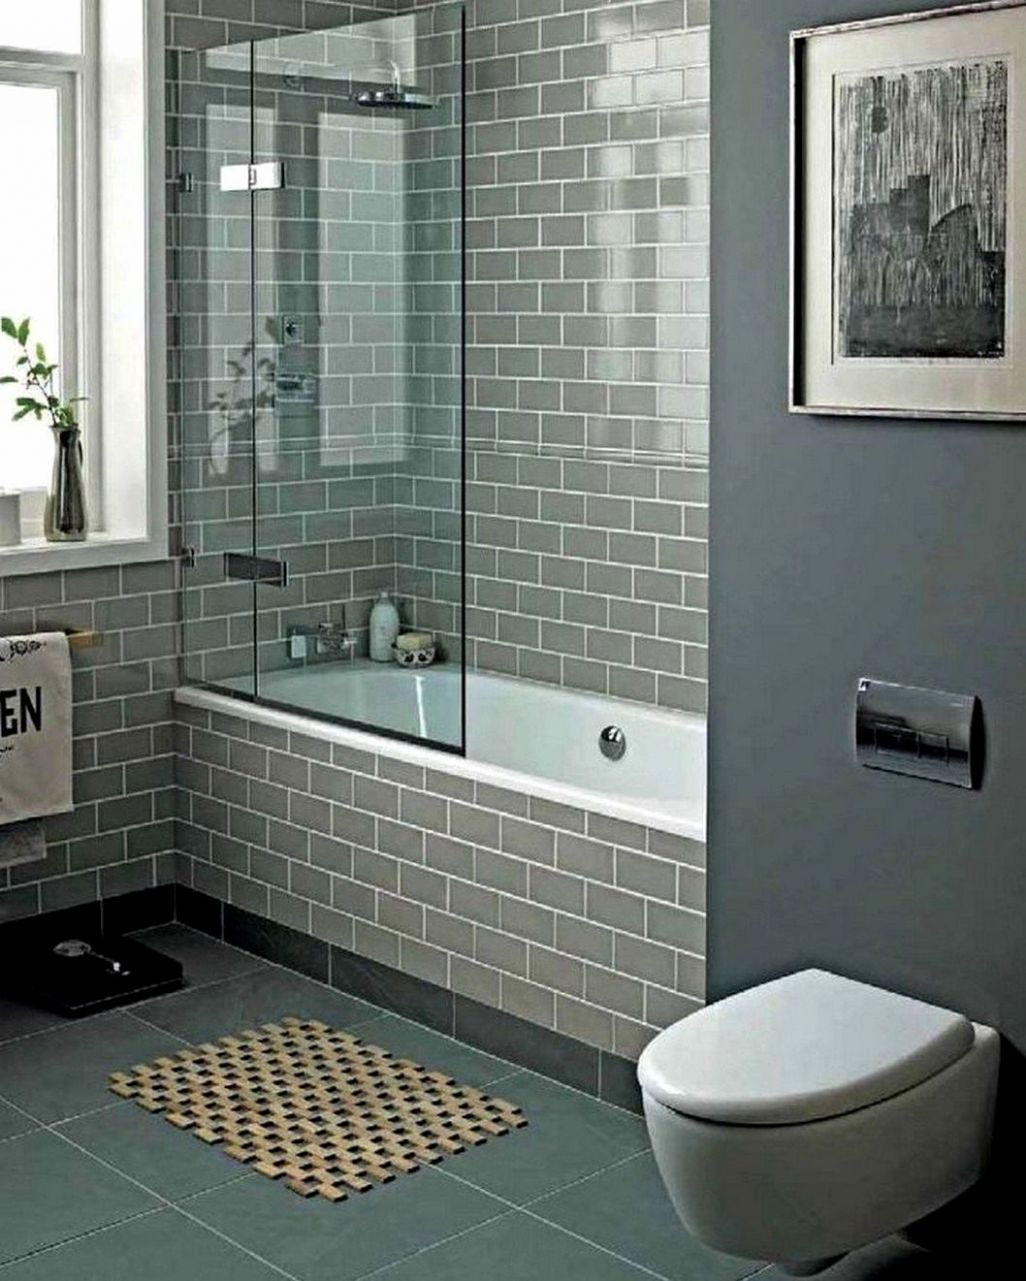 Painting woodwork in and around your home | Bathroom tub shower ...